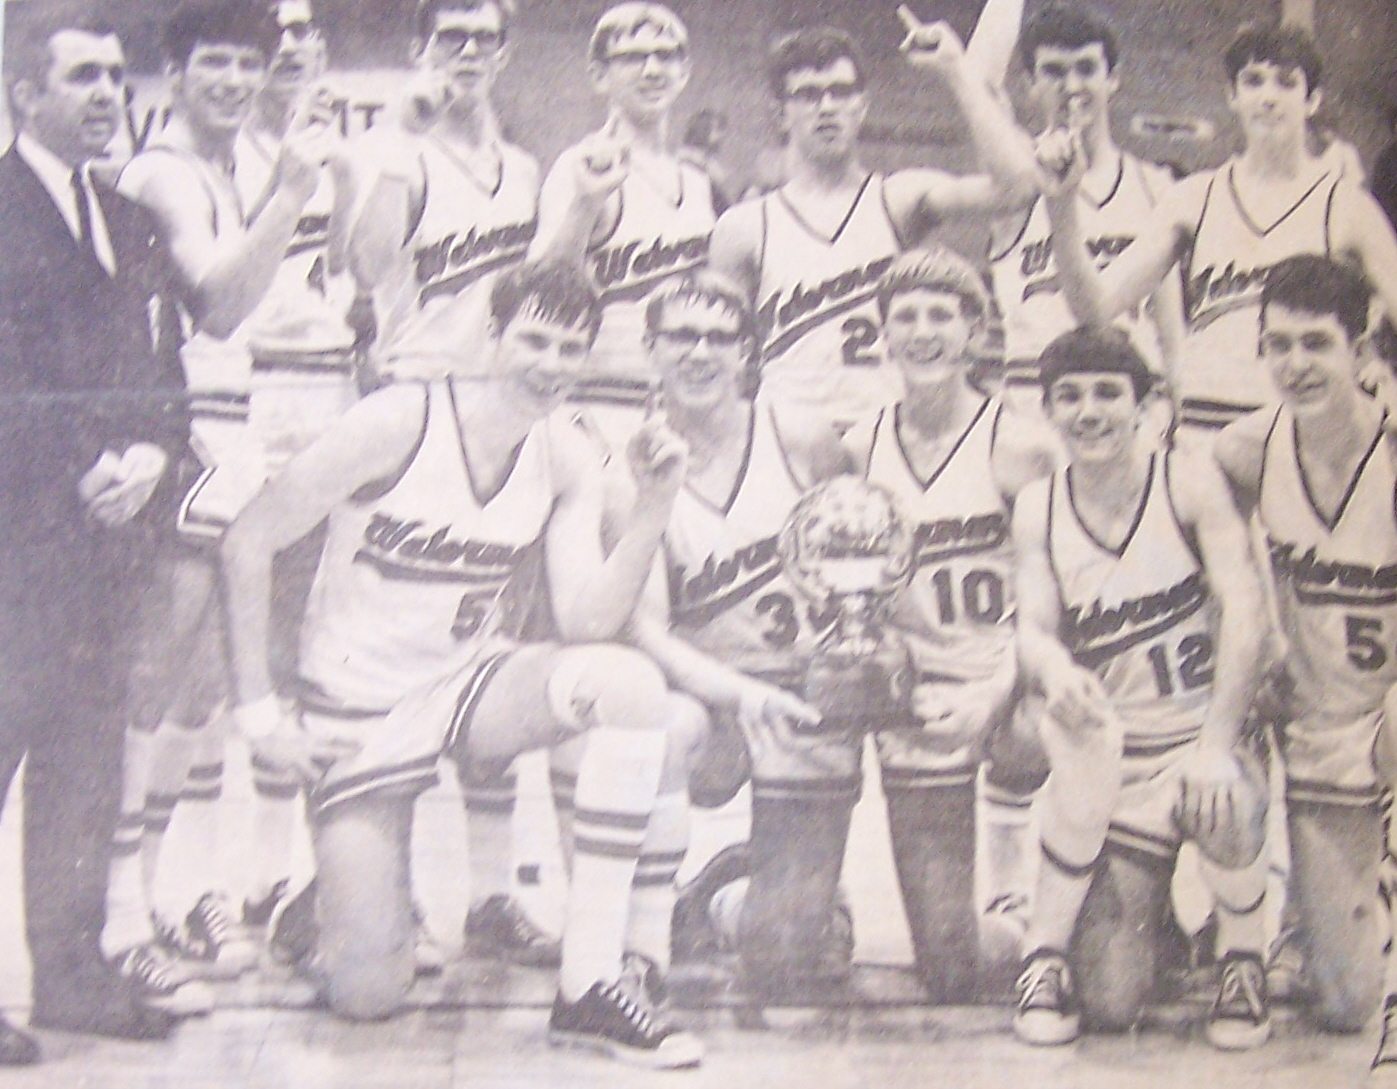 waterman1970ltctournamentchamps.jpg